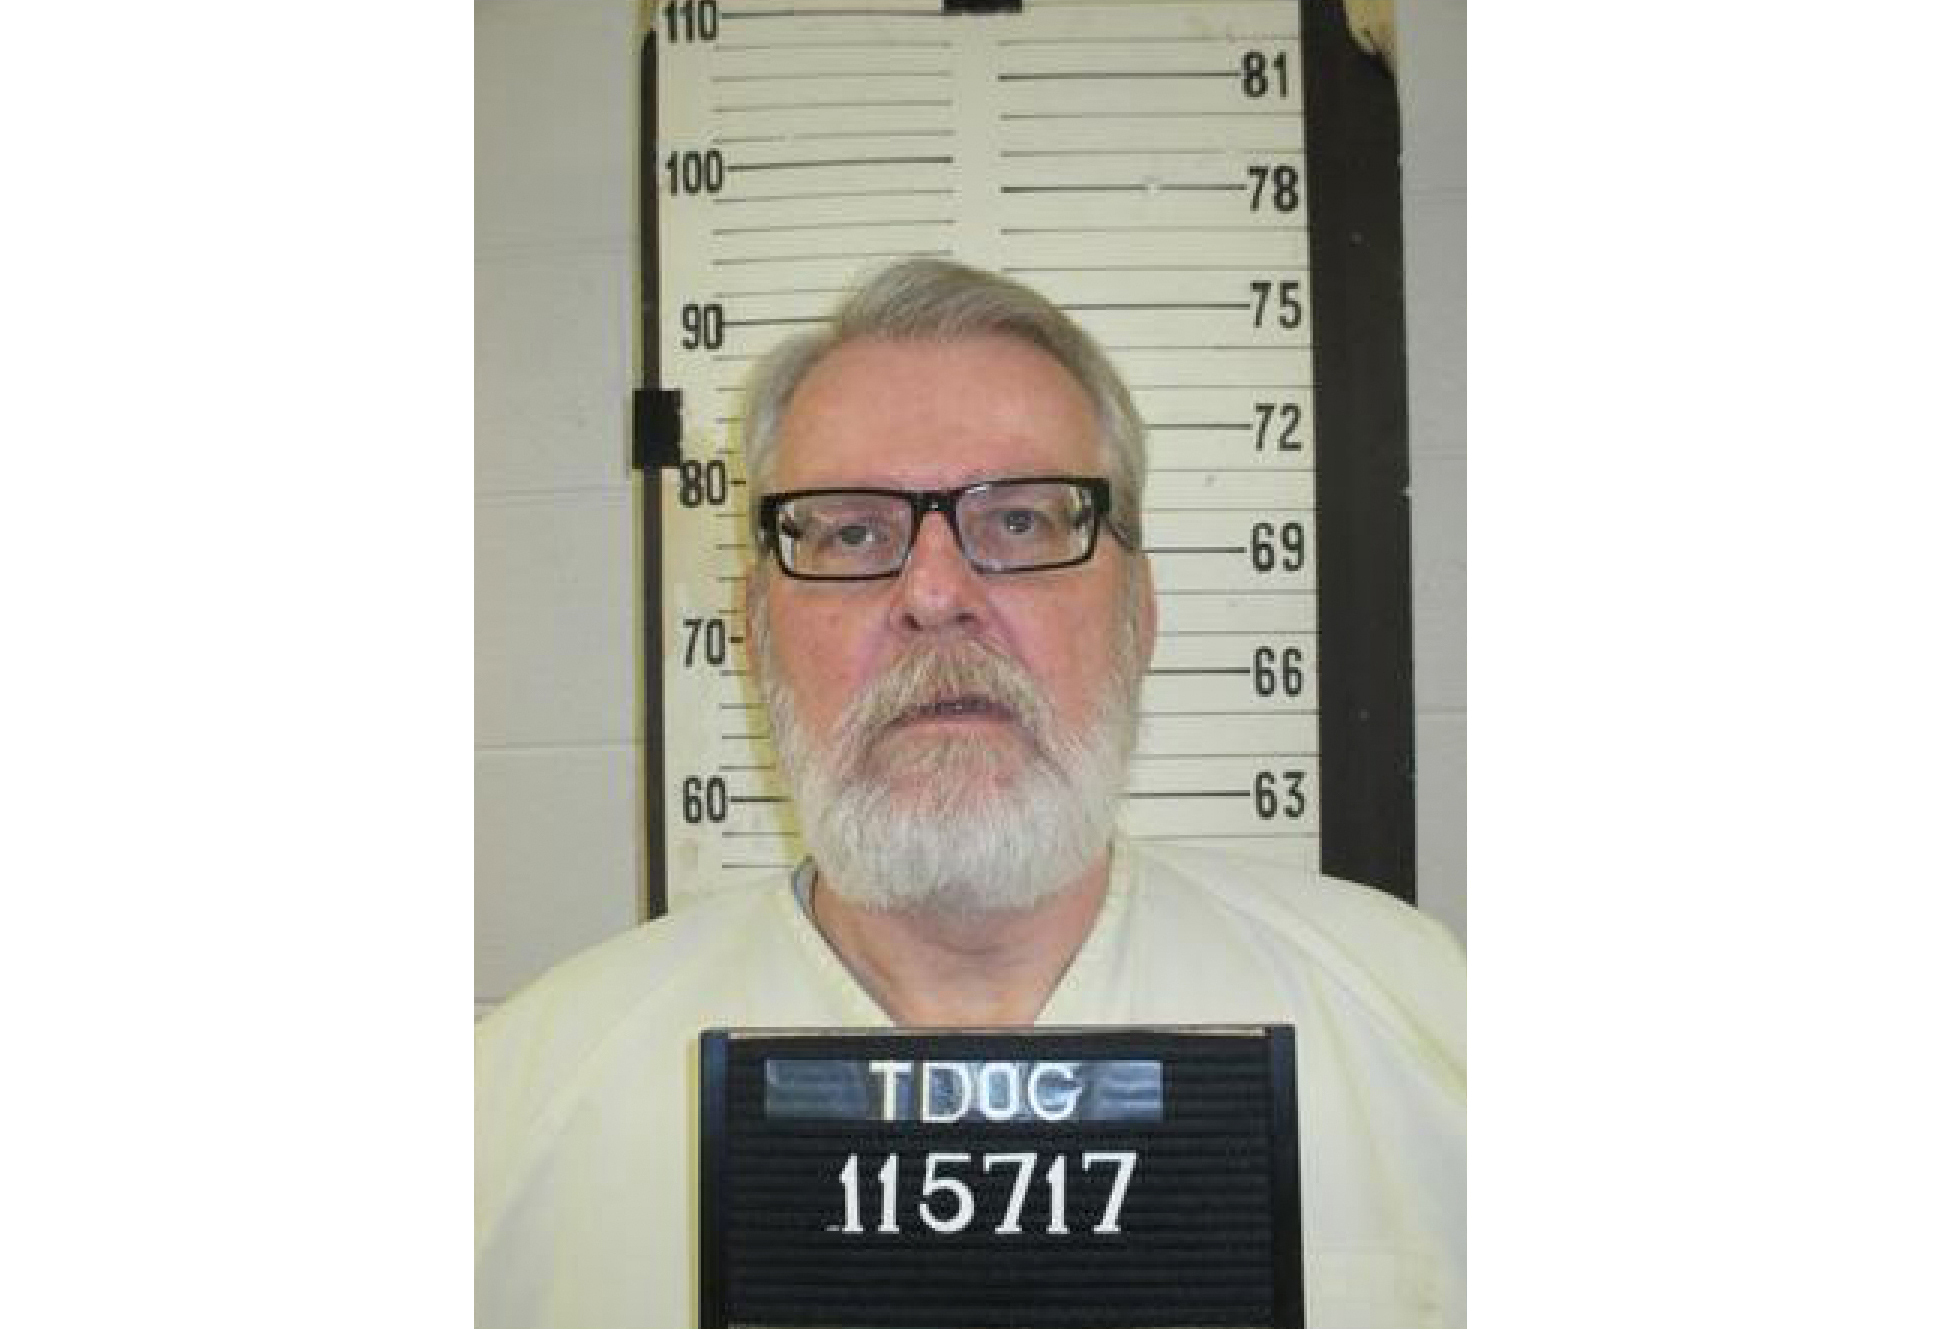 Tennessee inmate executed in electric chair for killings